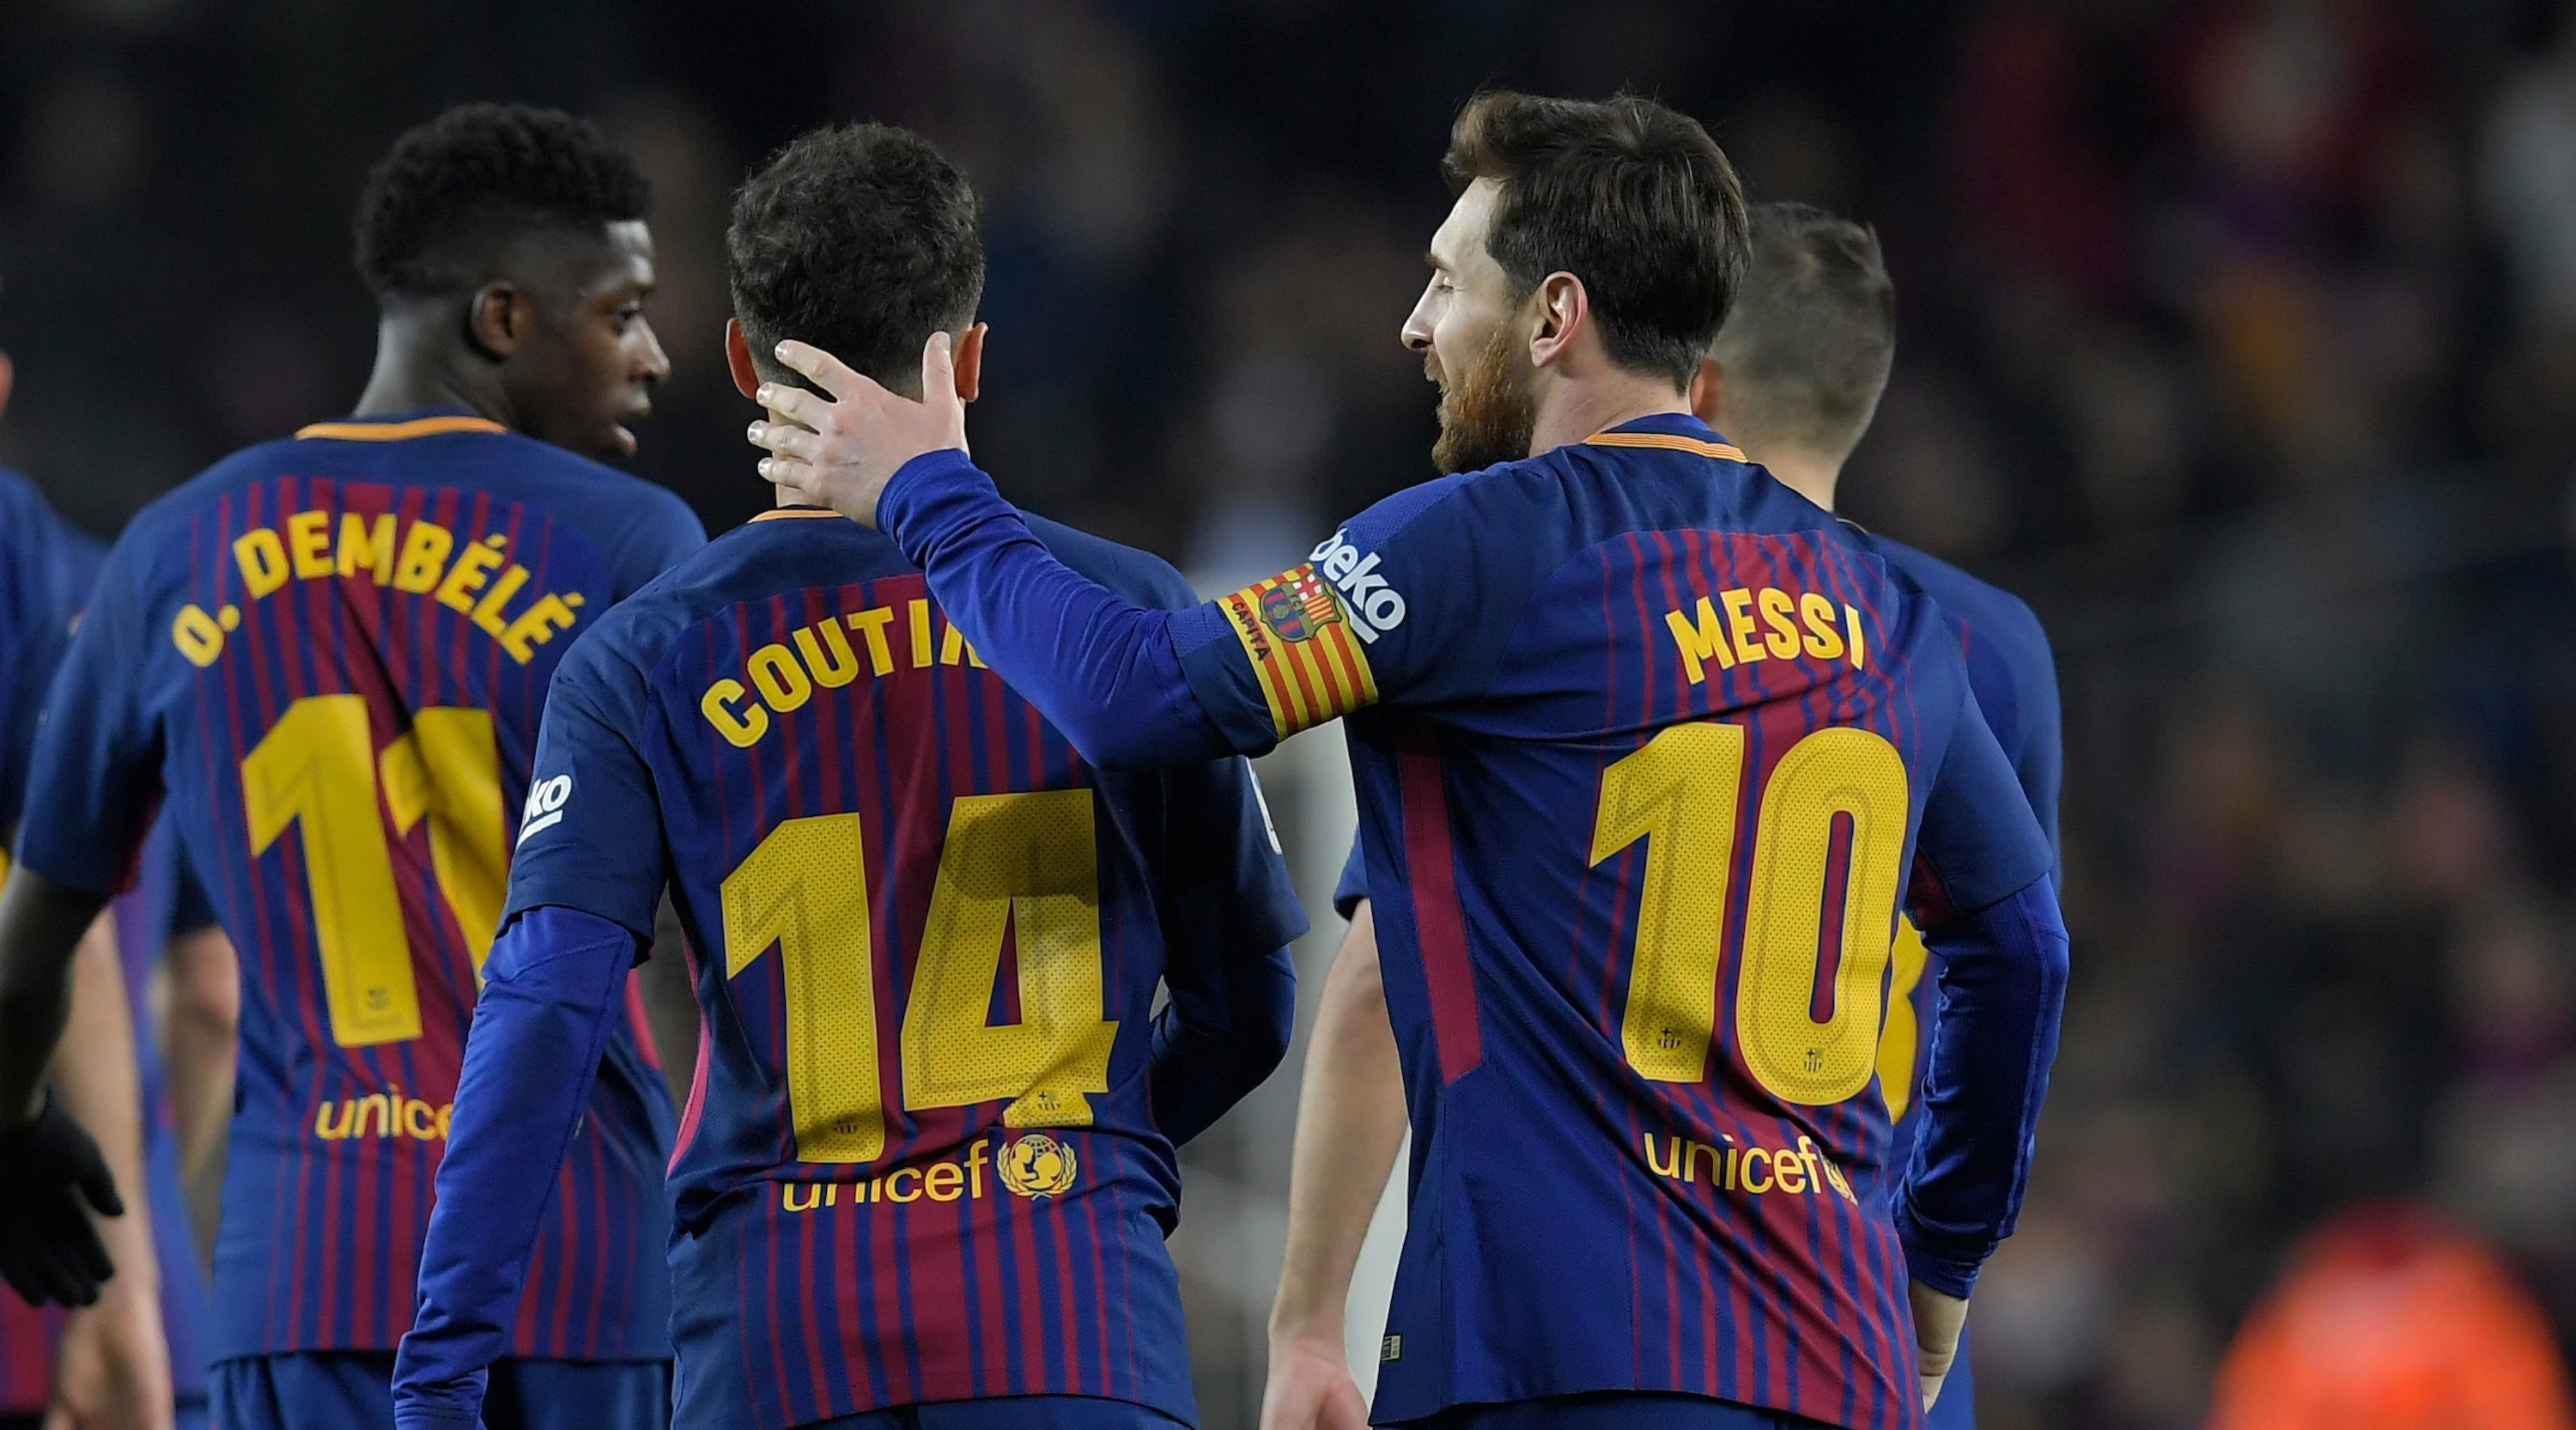 Barcelona's Brazilian midfielder Philippe Coutinho (C) celebrates with Barcelona's Argentinian forward Lionel Messi (R) after scoring during the Spanish league football match between FC Barcelona and Girona FC at the Camp Nou stadium in Barcelona on February 24, 2018. / AFP PHOTO / LLUIS GENE (Photo credit should read LLUIS GENE/AFP/Getty Images)